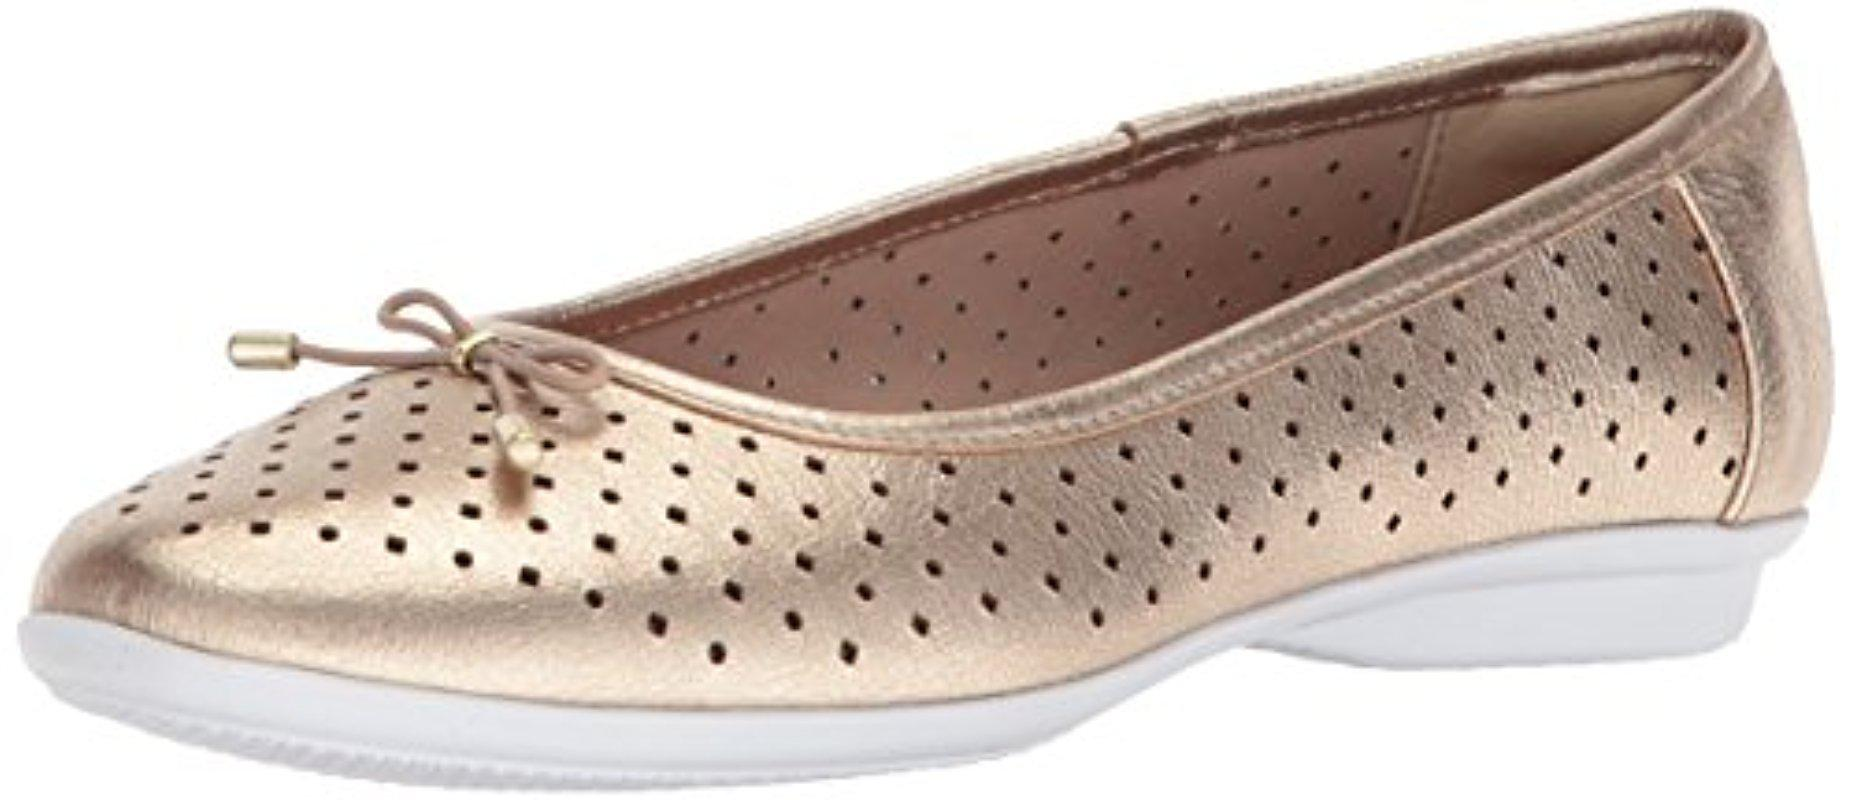 Clarks Gracelin Perforated Leather Ballet Flat ePtNO